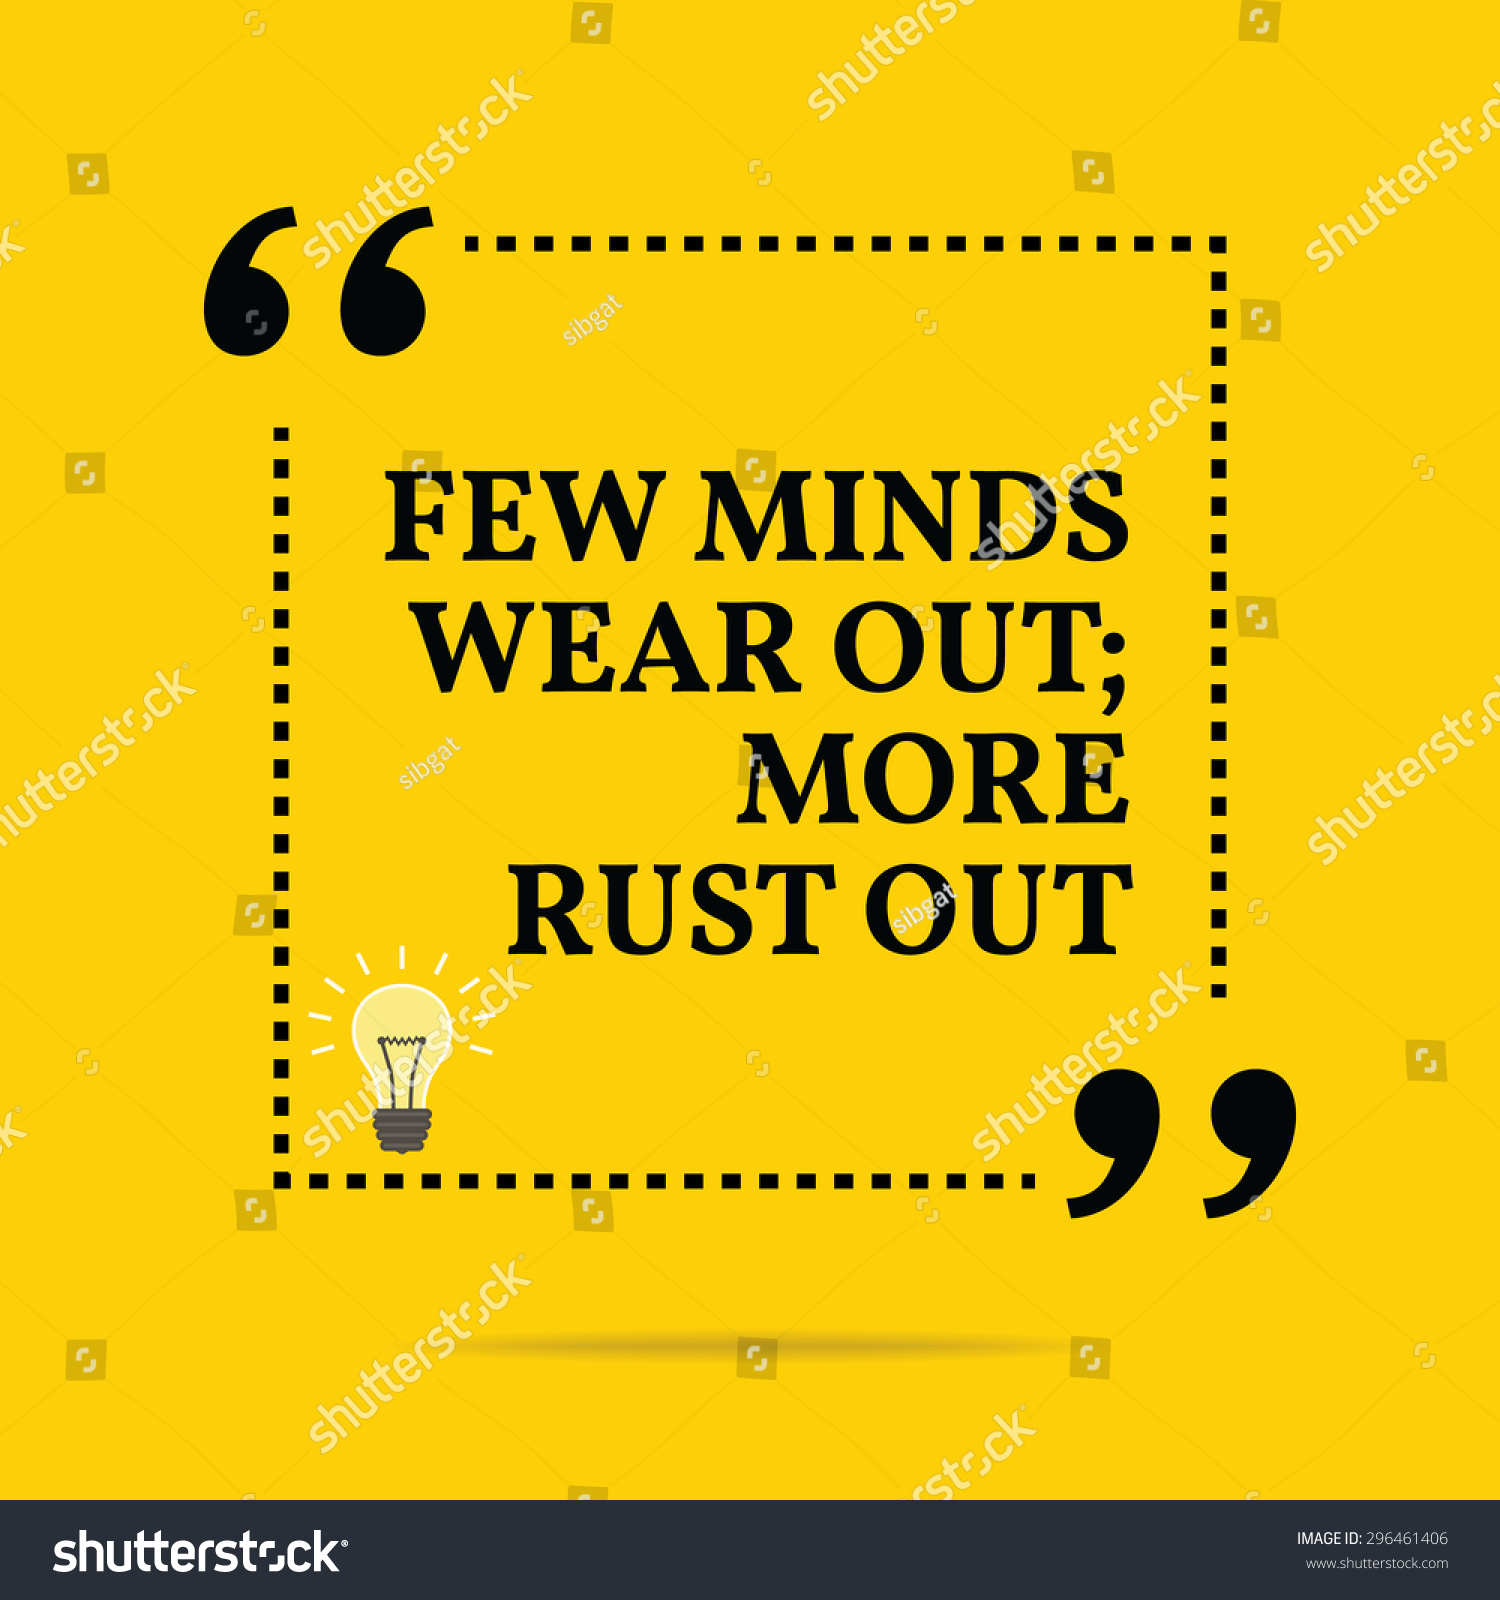 Simple Typography Spells Out A Powerful Motivation For: Inspirational Motivational Quote. Few Minds Wear Out; More